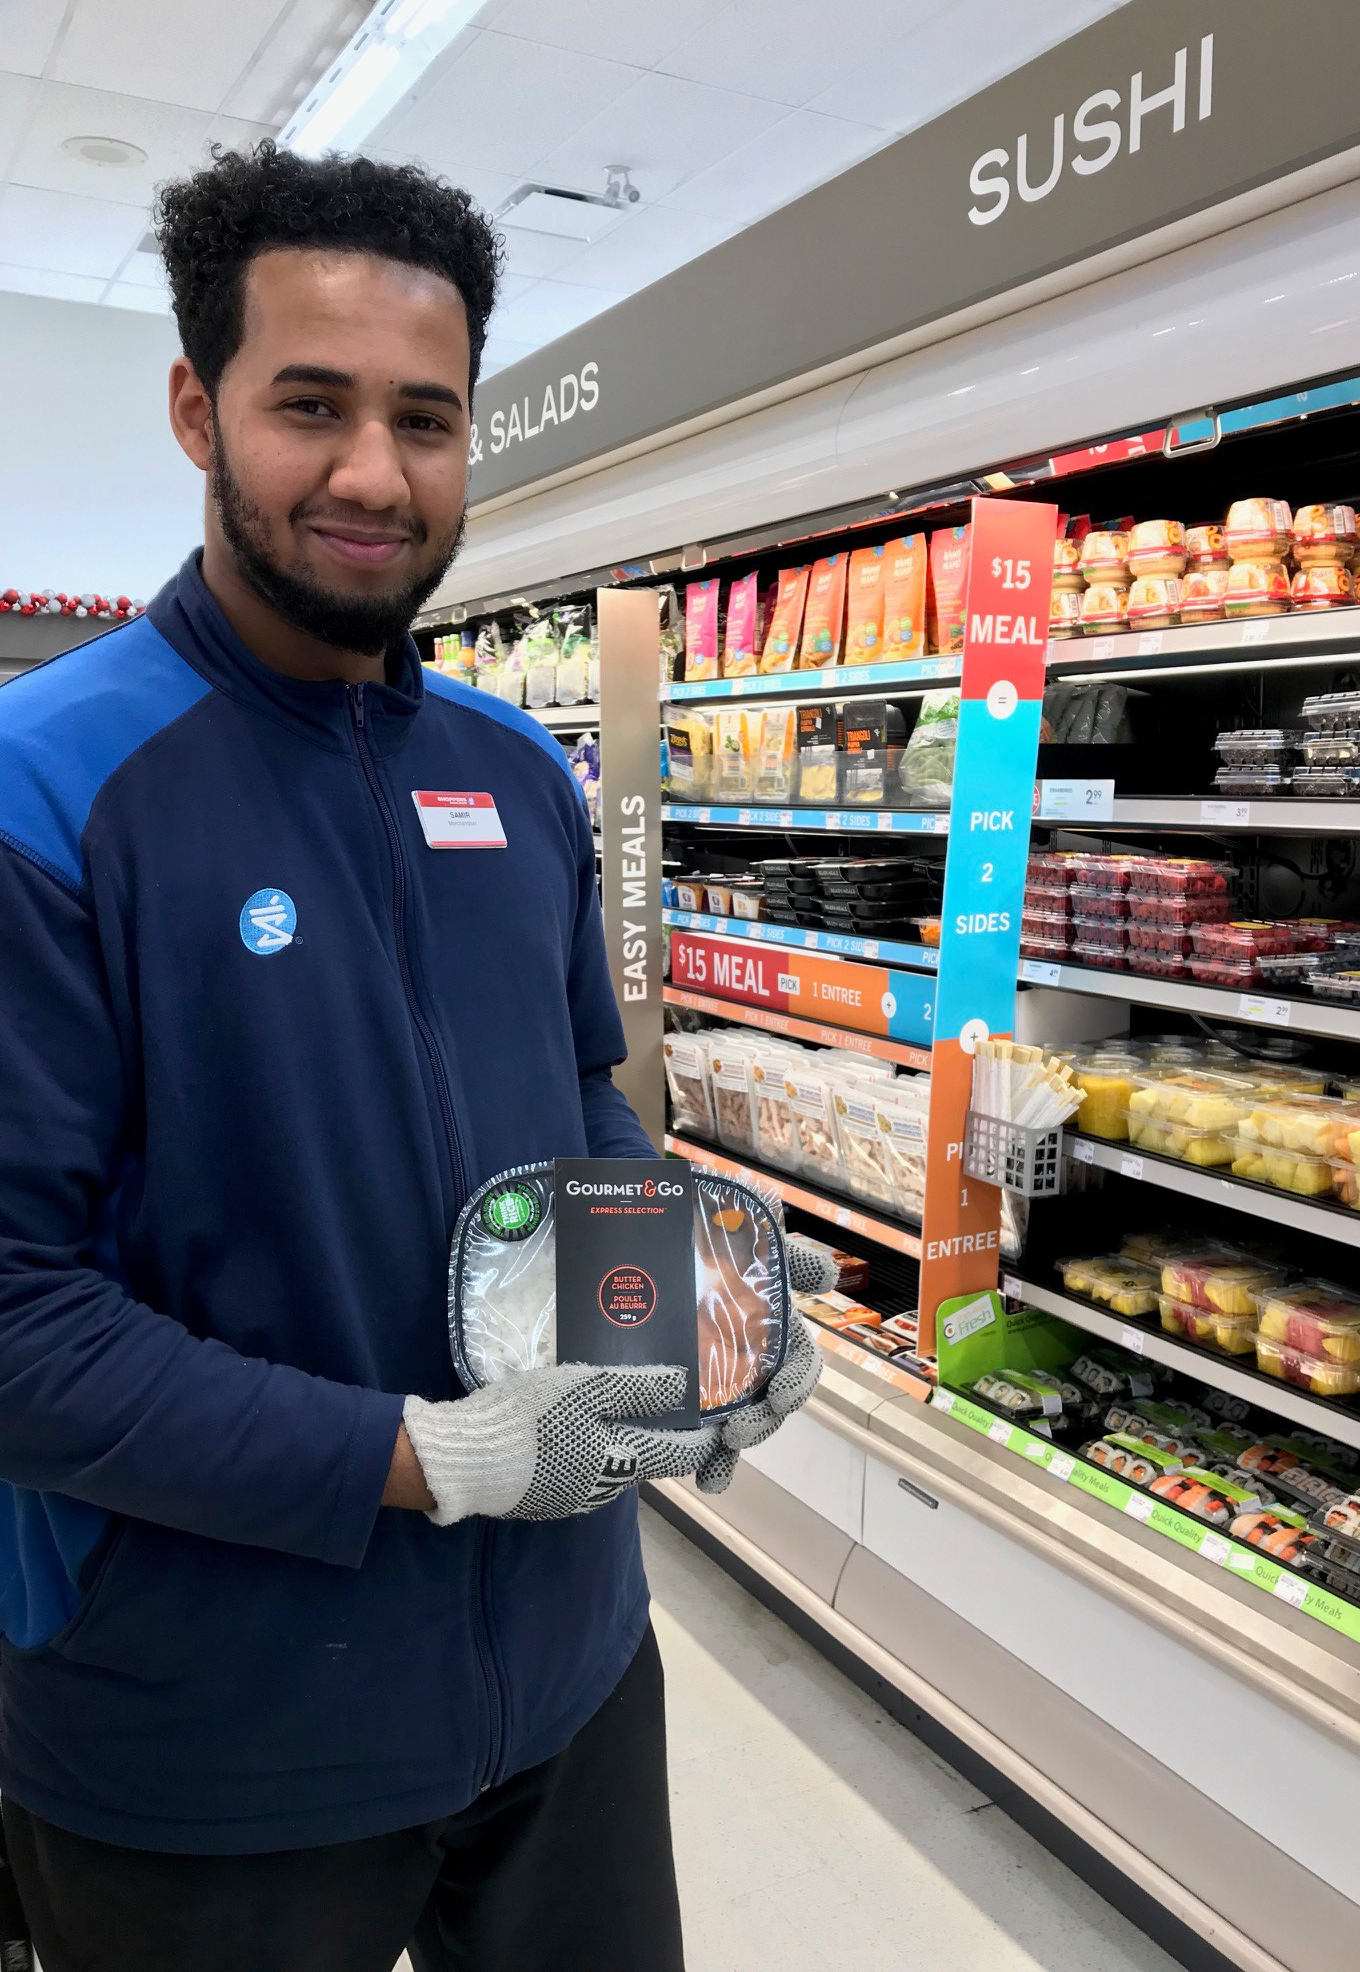 Young man wearing gloves, stocking shelves in grocery store holds Gourmet & Go butter chicken package